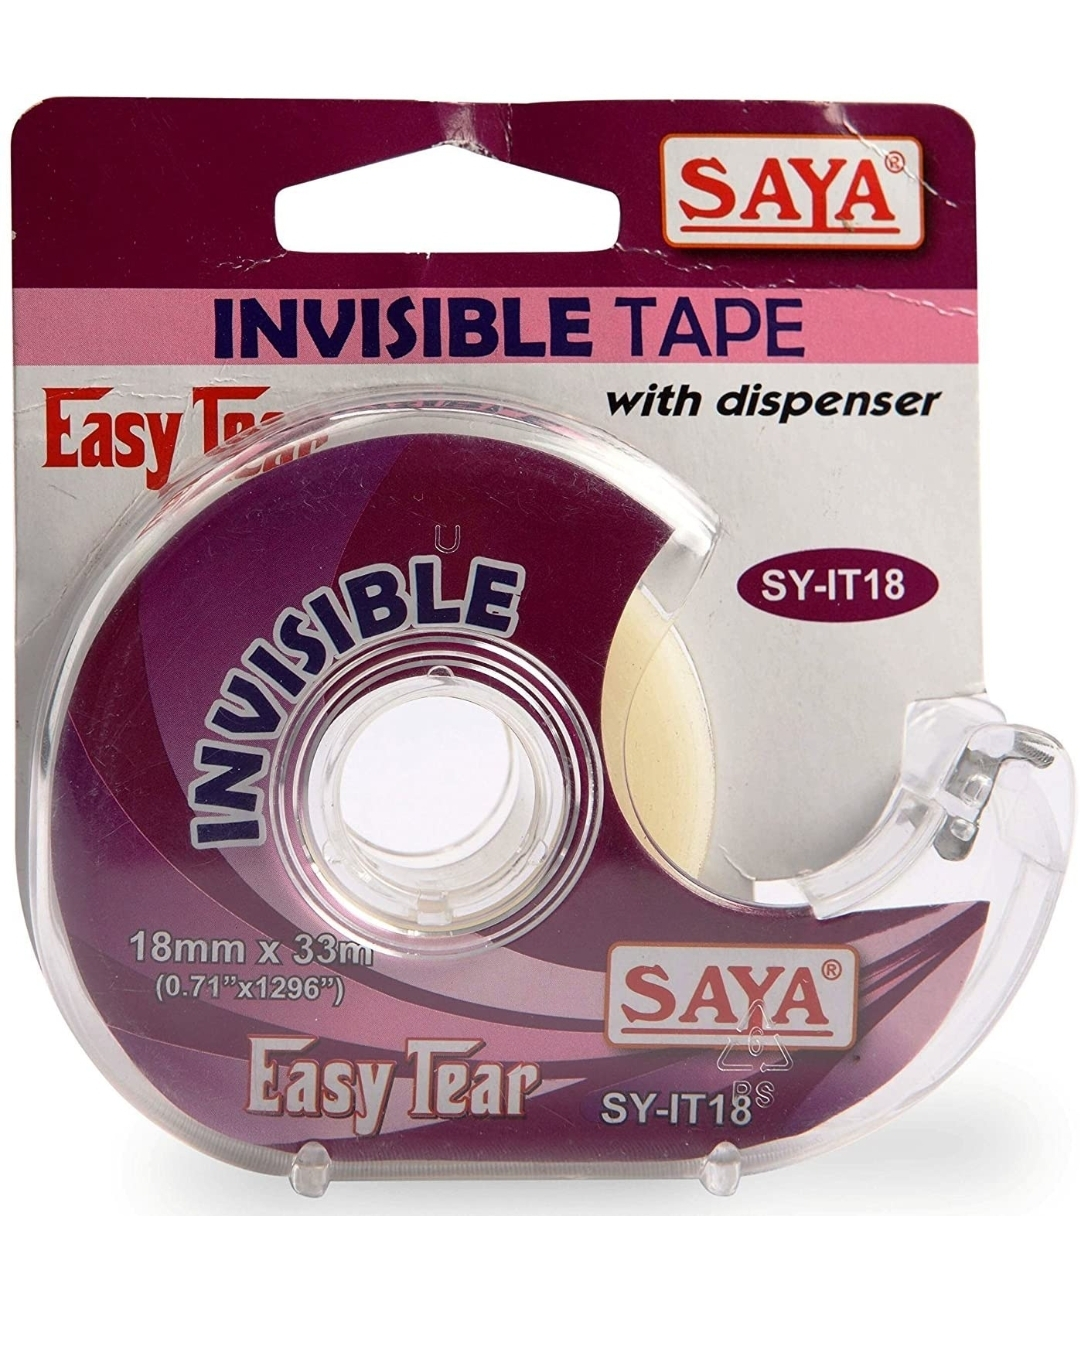 Saya Invisible Tape With Dispenser, SY- IT18, 33 Mtr Length, 18 mm Pack of 1